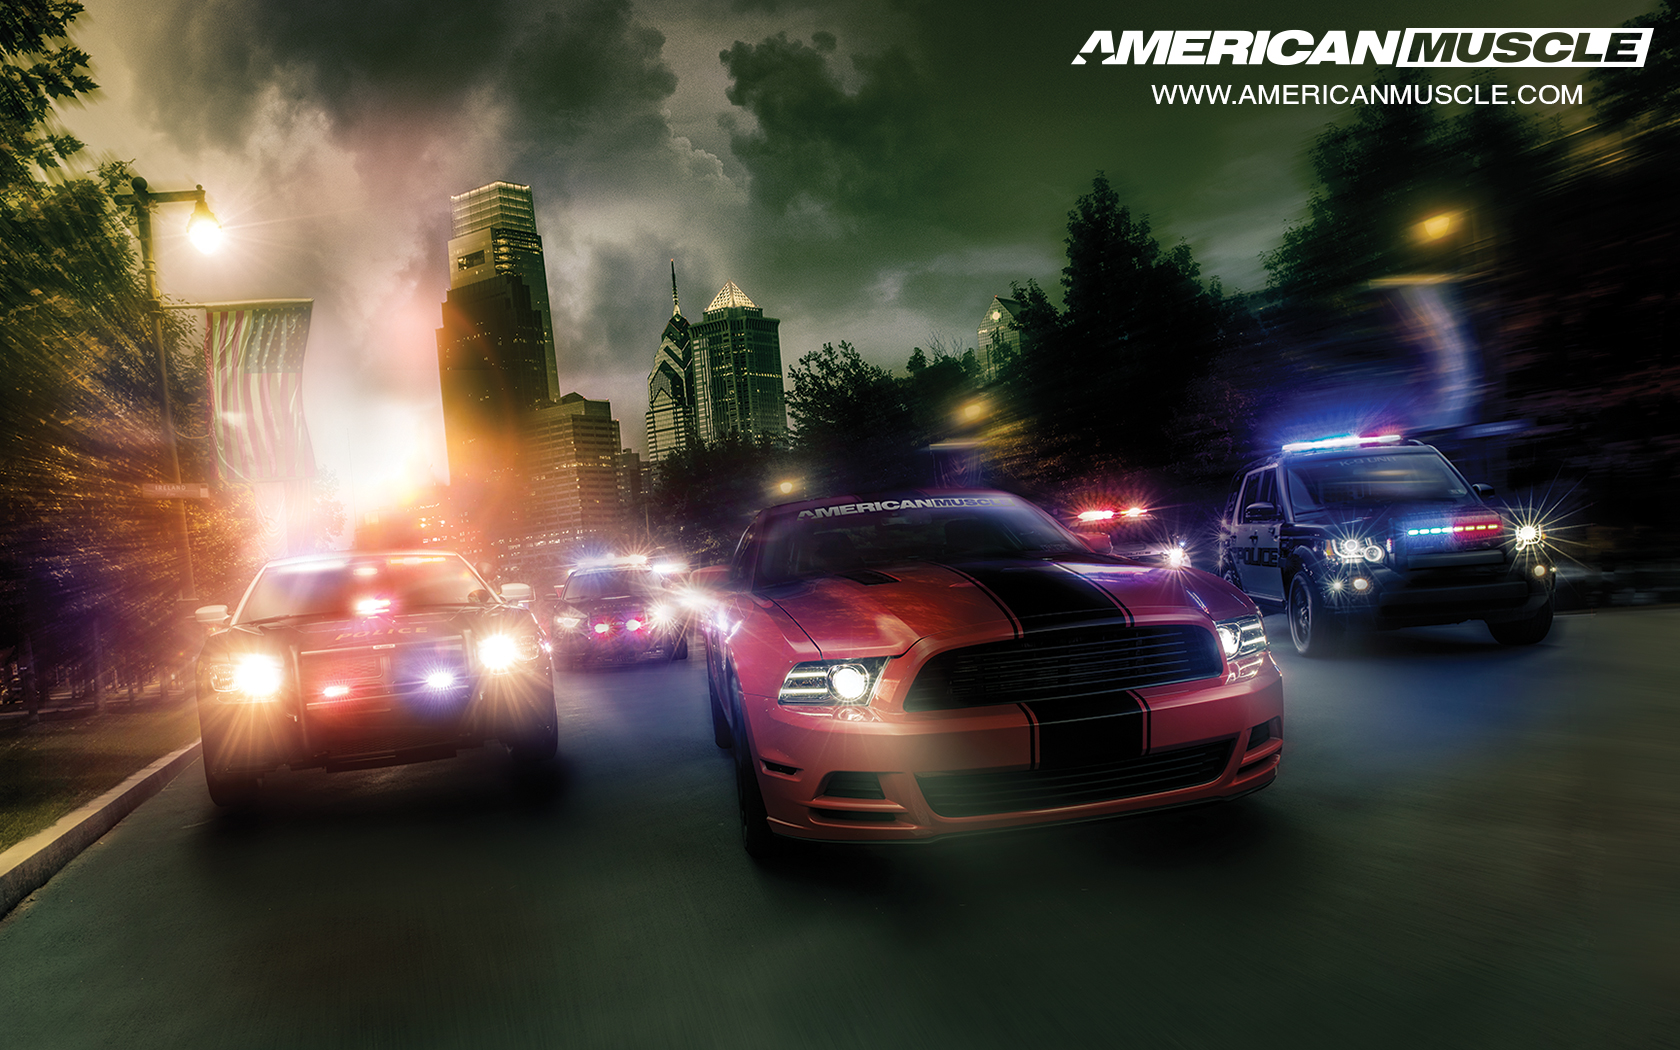 2015 AmericanMuscle Calendar | AmericanMuscle.com